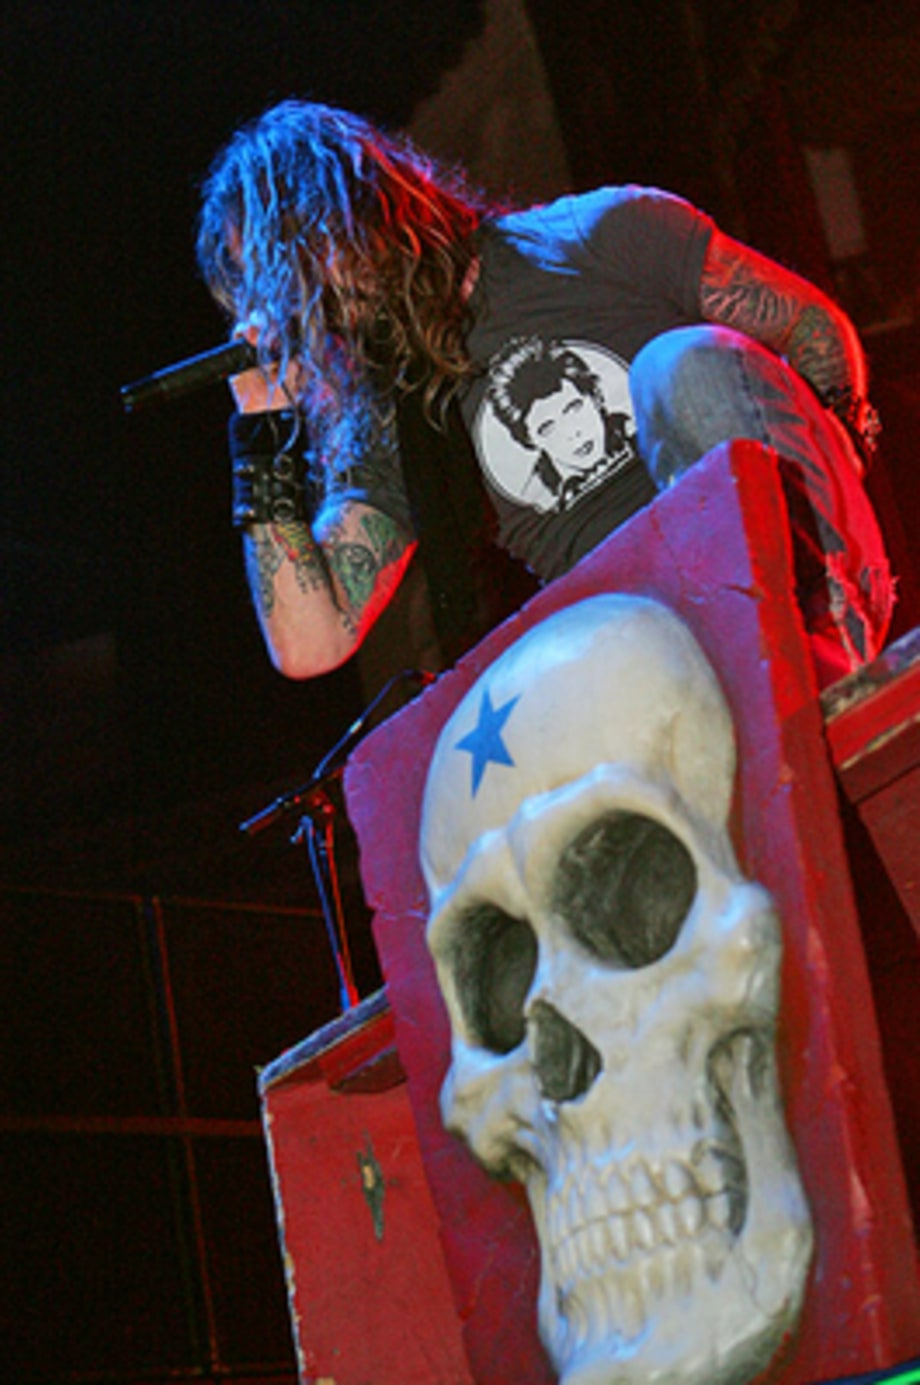 Rob Zombie 10 - Chicago, IL 4/8/06